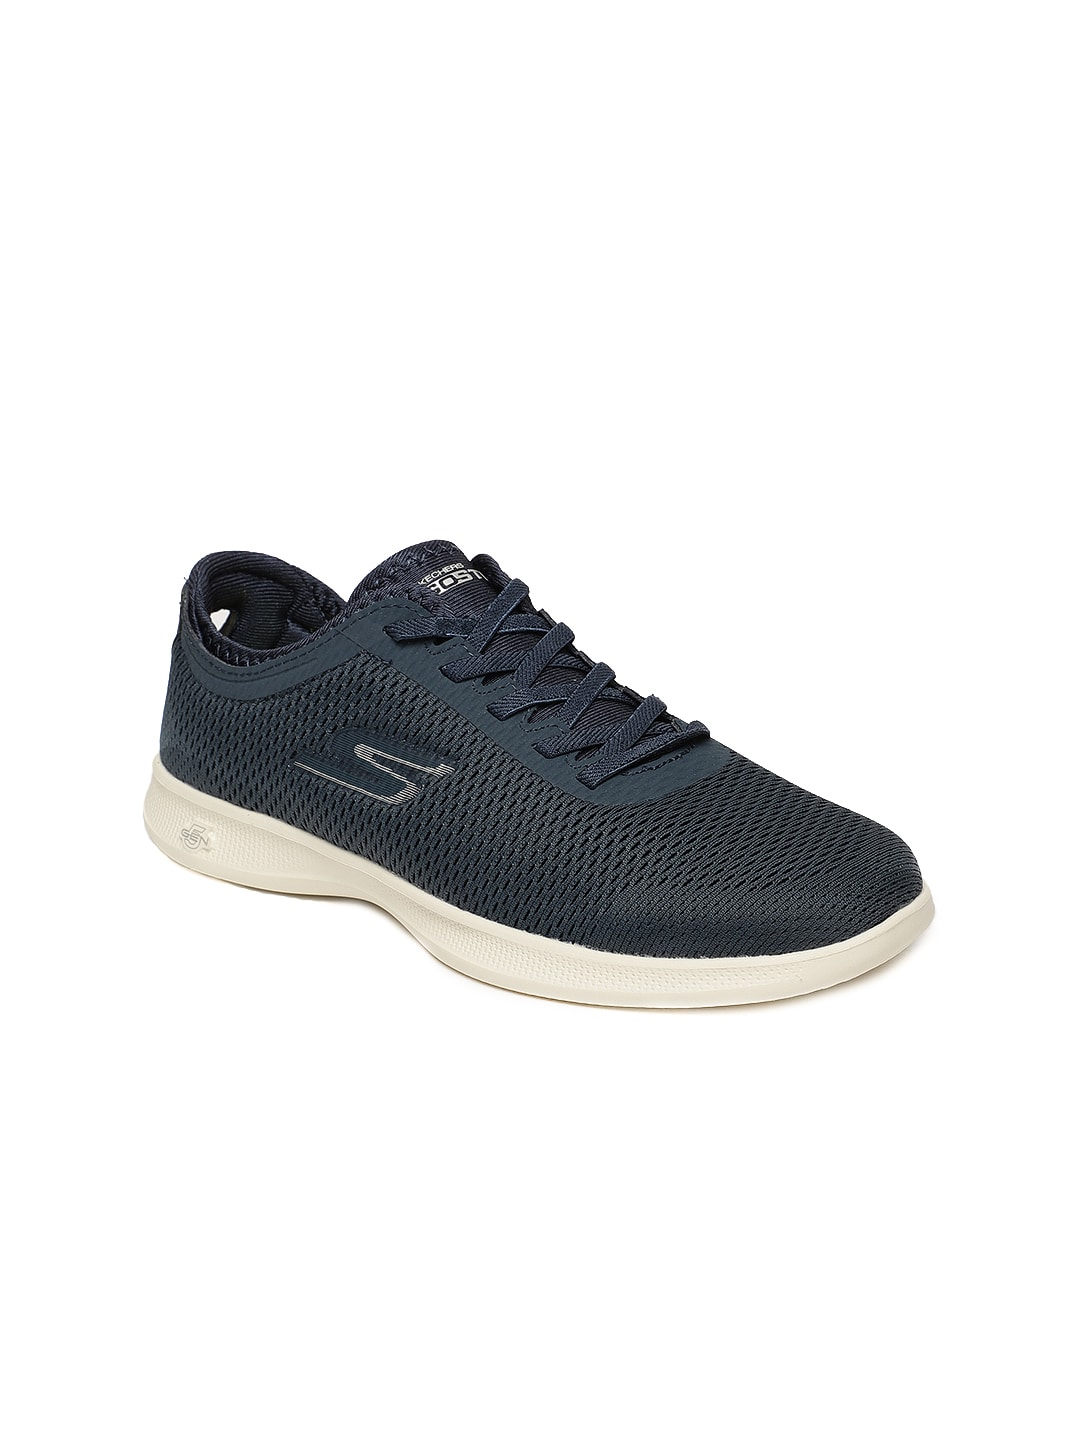 3bdccc1ede8 Skechers - Buy Skechers Footwear Online at Best Prices